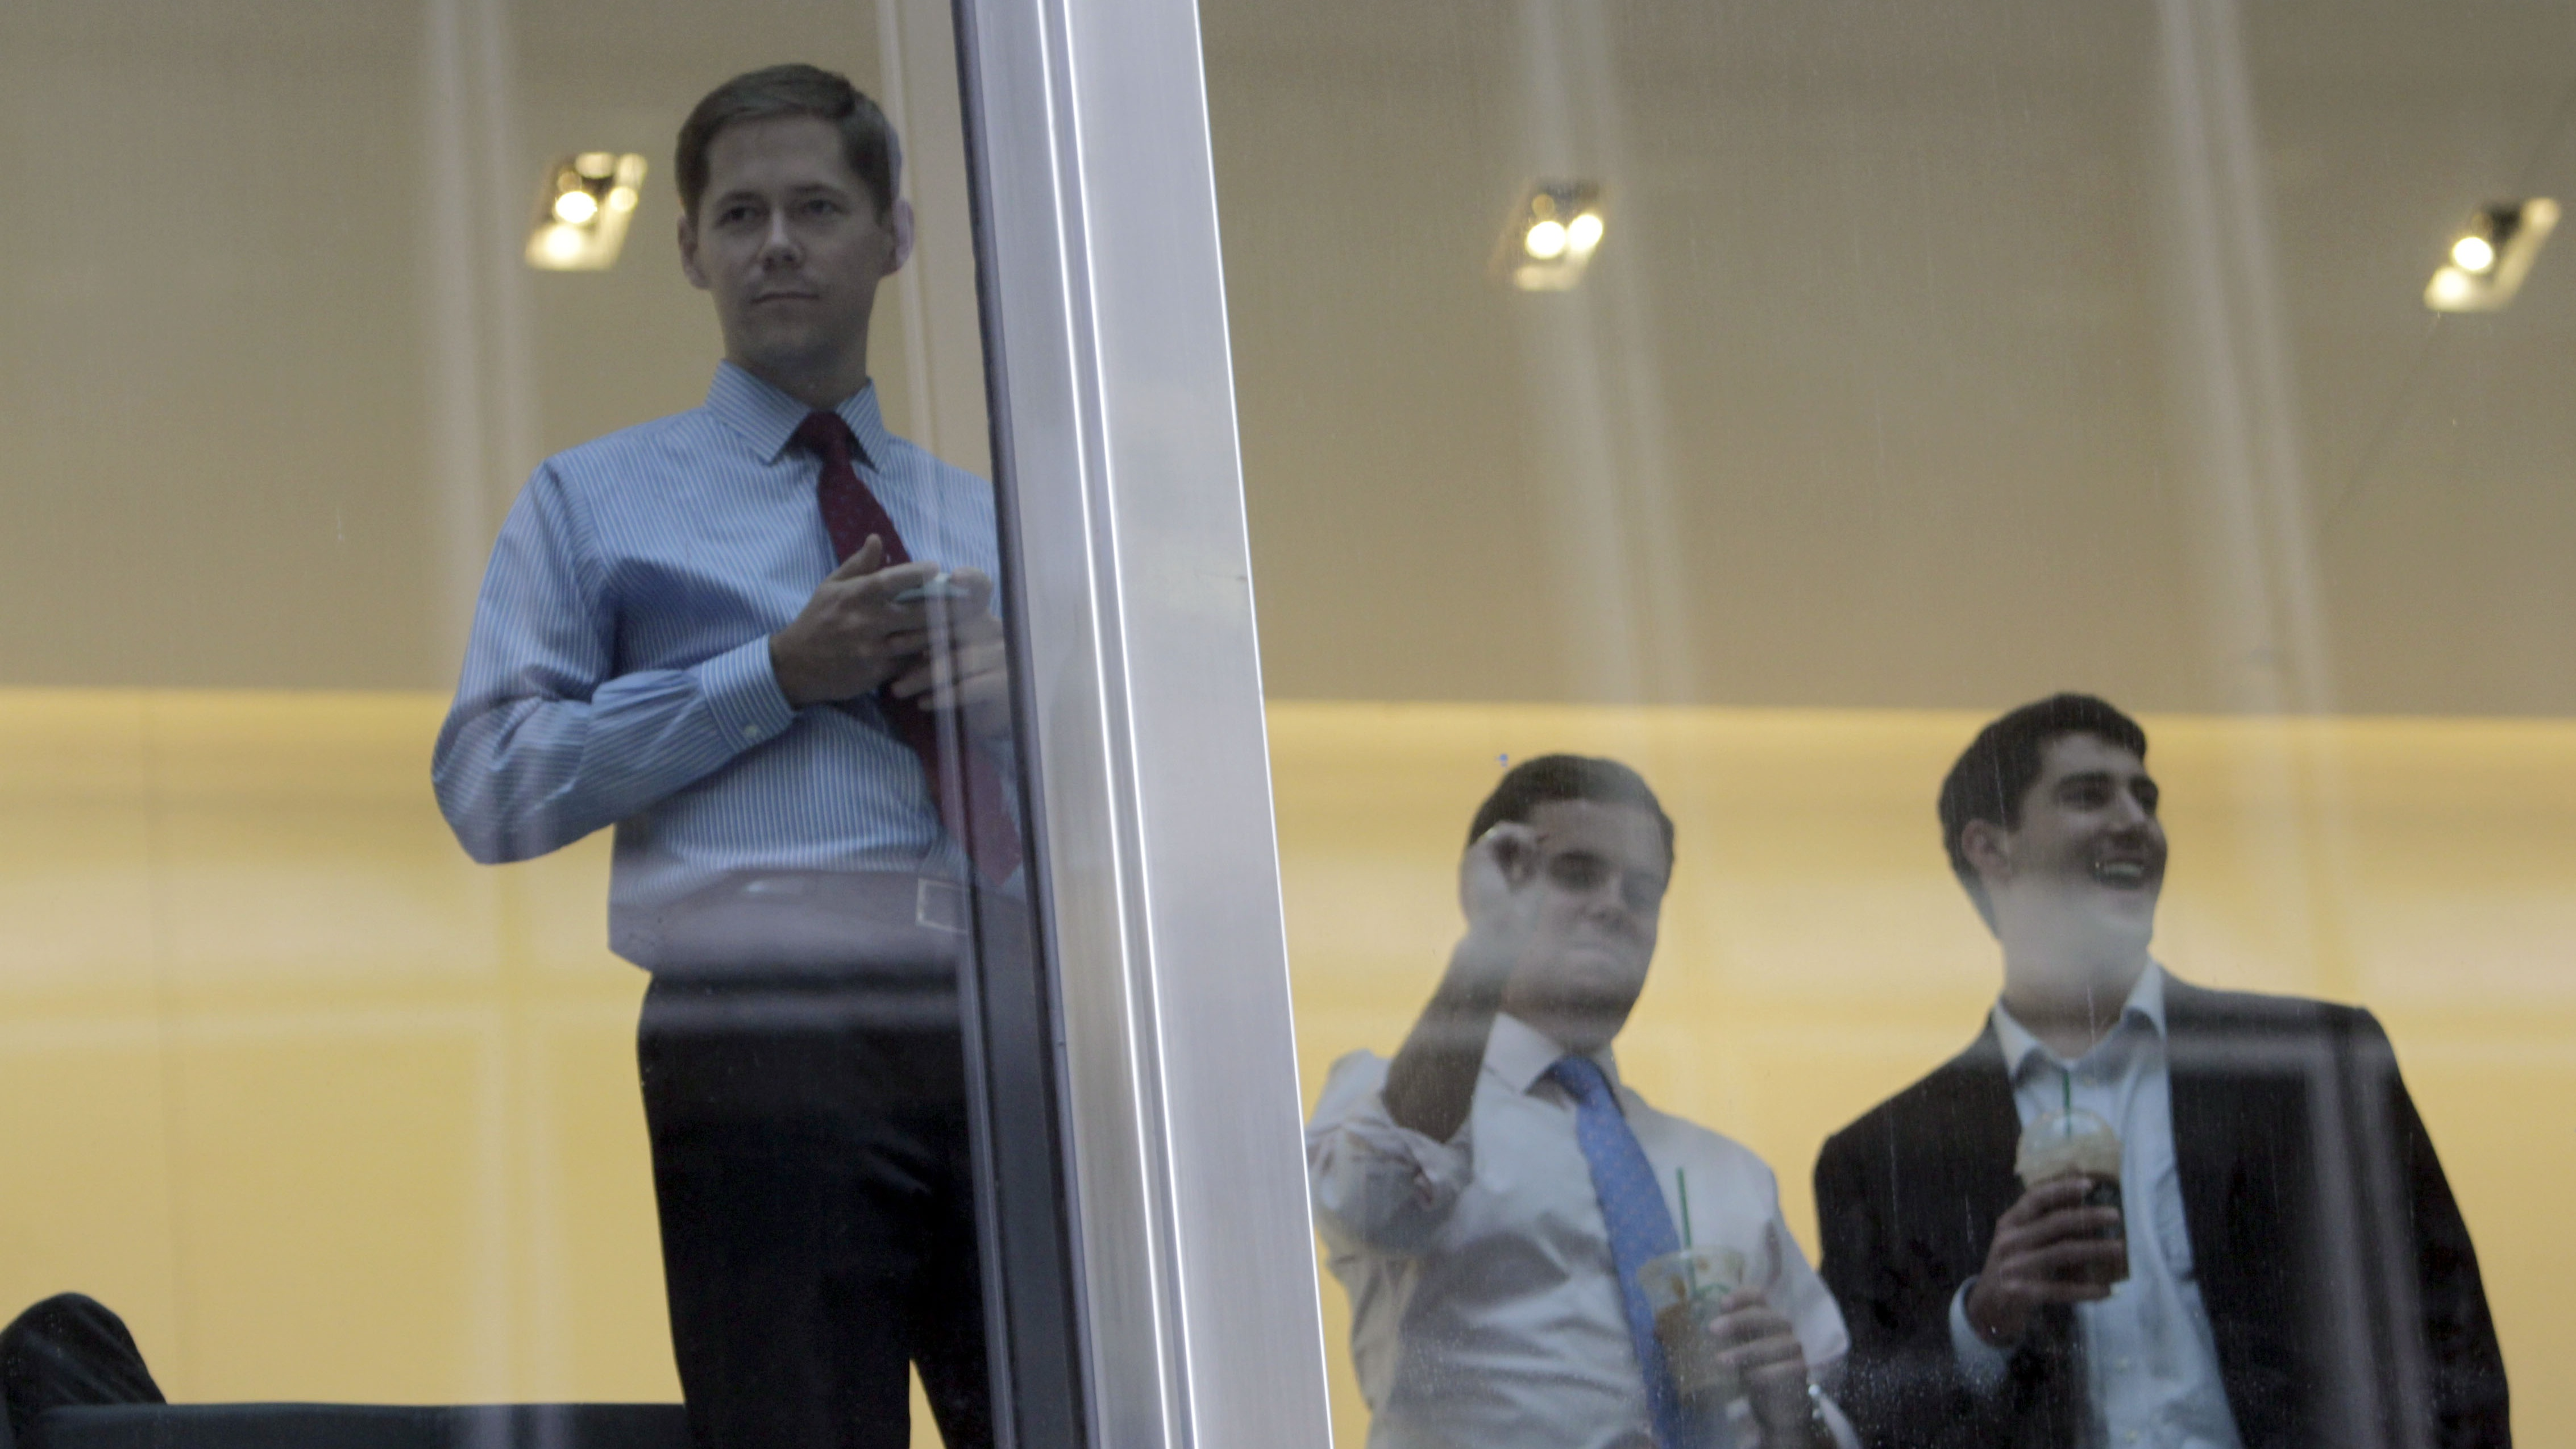 J.P. Morgan Chase employees watch as protestors associated with the Occupy Wall Street movement rally before delivering letters to the corporate headquarters intended for CEO Jamie Dimon, Friday, Oct. 28, 2011, in New York. (AP Photo/Mary Altaffer)